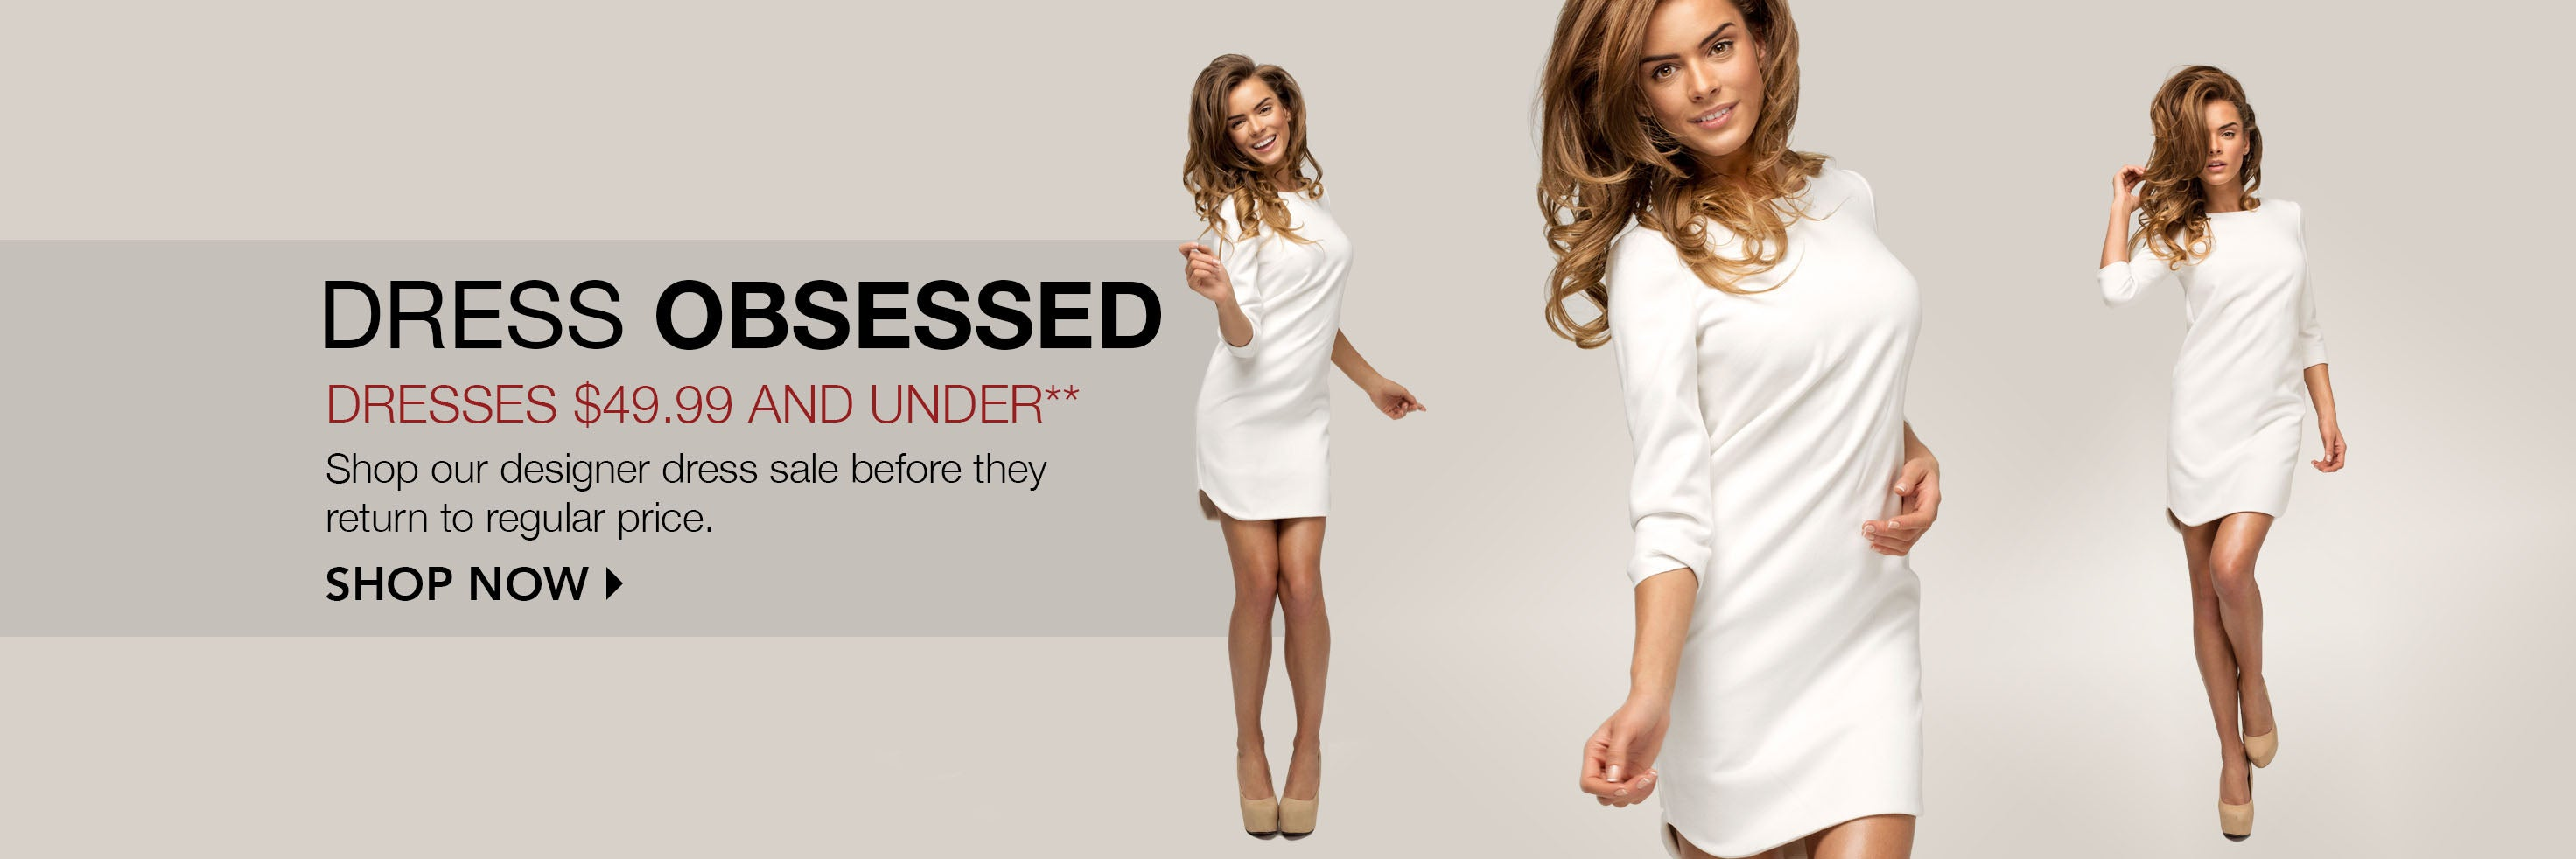 Dress Obsessed - Shop Designer Dress Sale